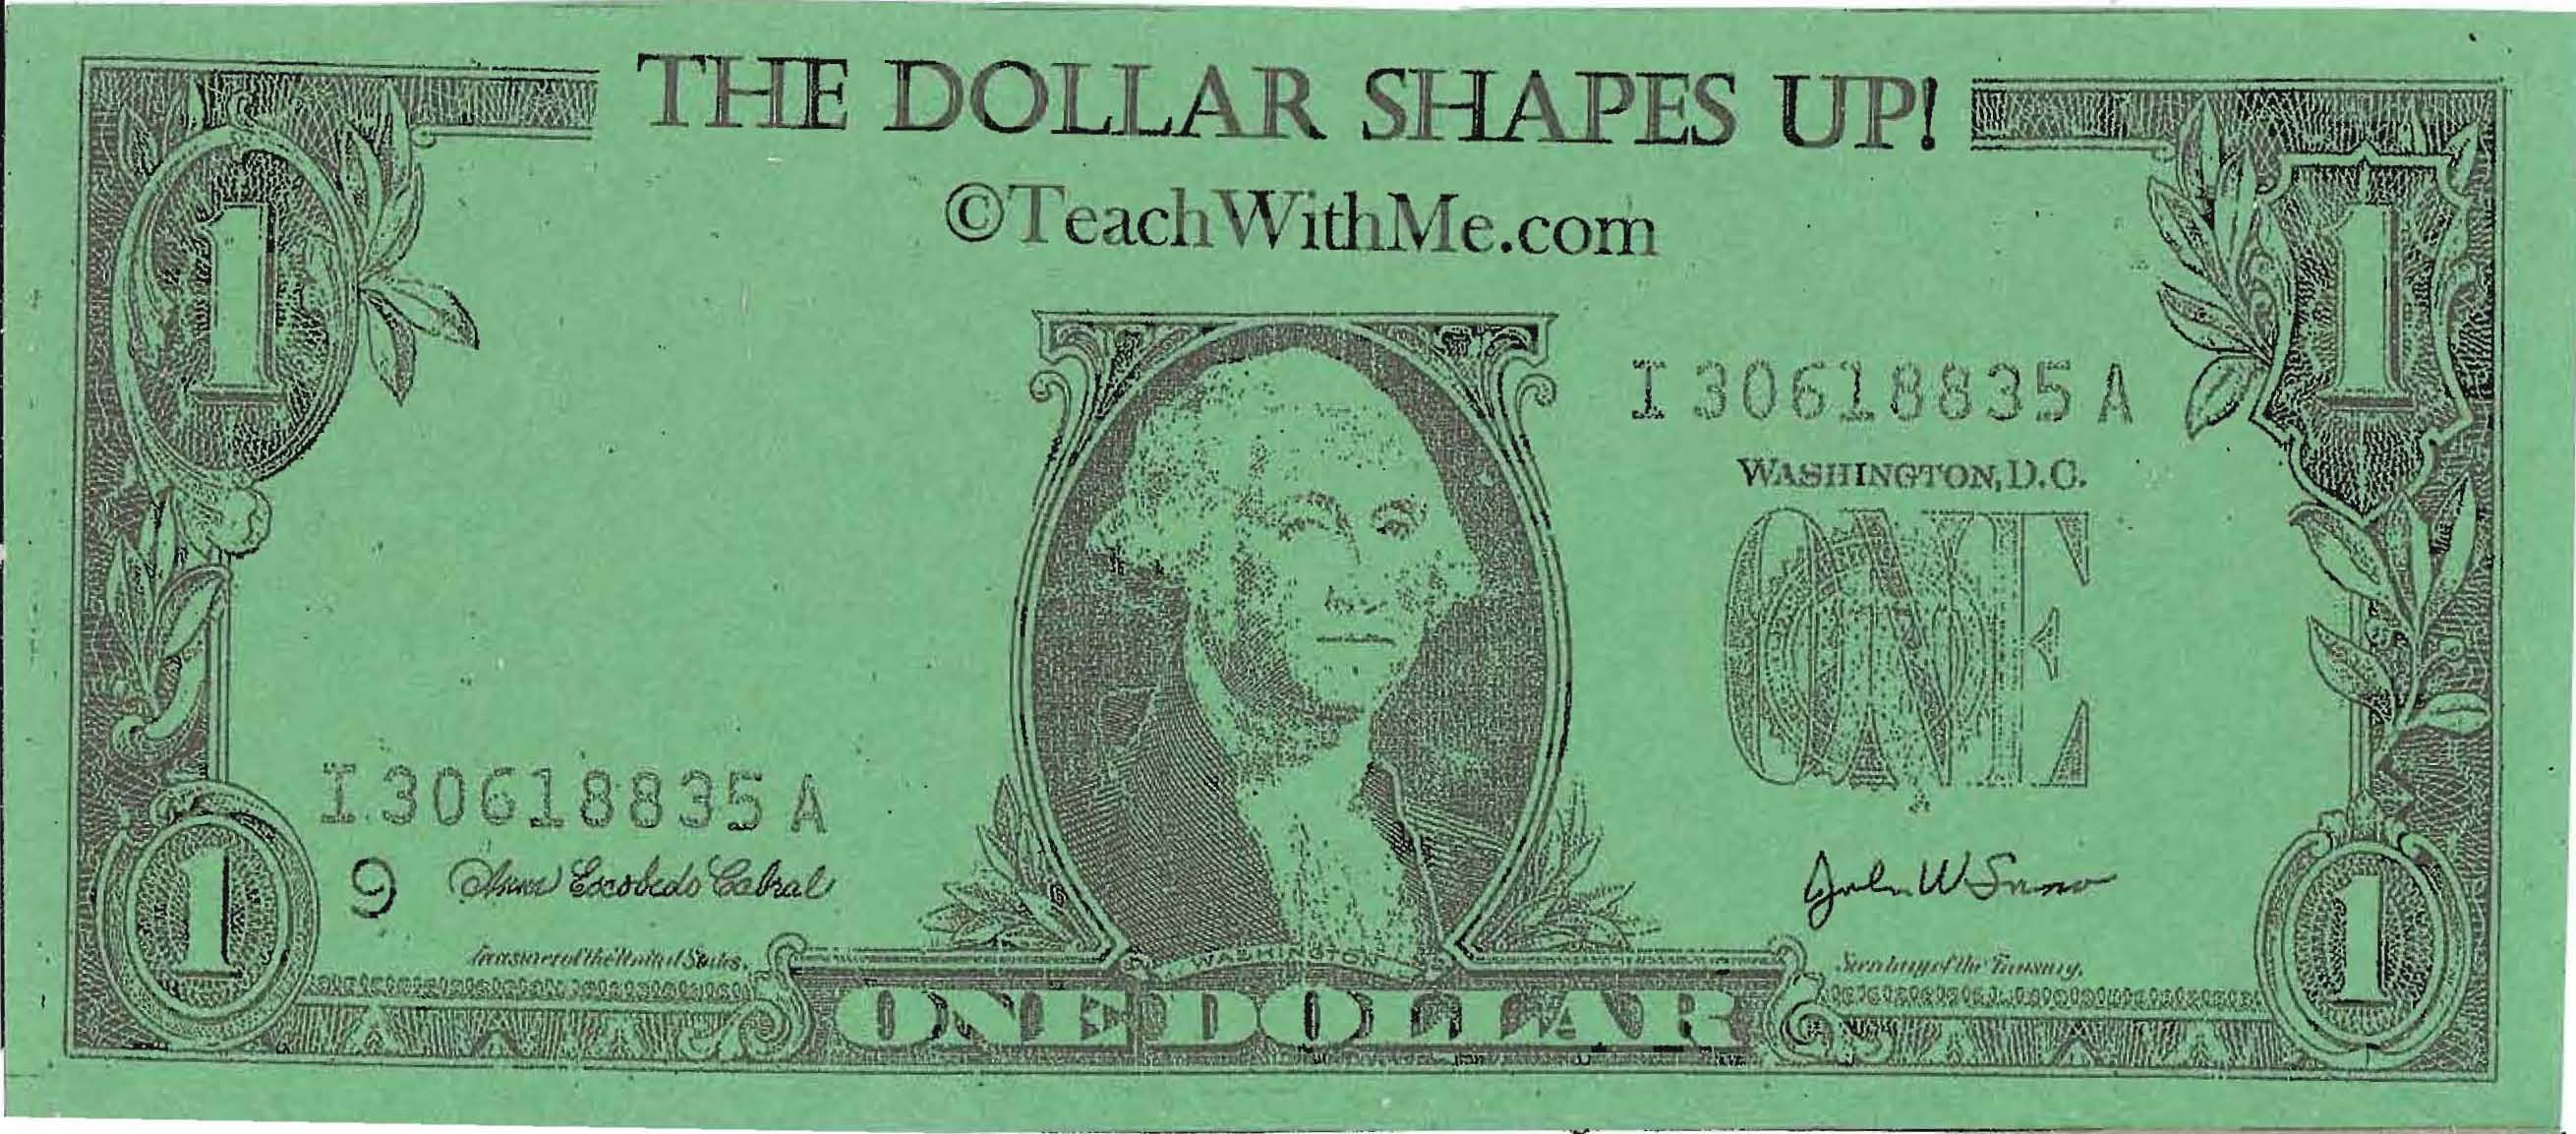 dollar booklet, money booklet, money activities, george washington ideas, george washington activities, presidents day activities, ideas for presidents day, presidents day centers, shape activities, center ideas for shapes,